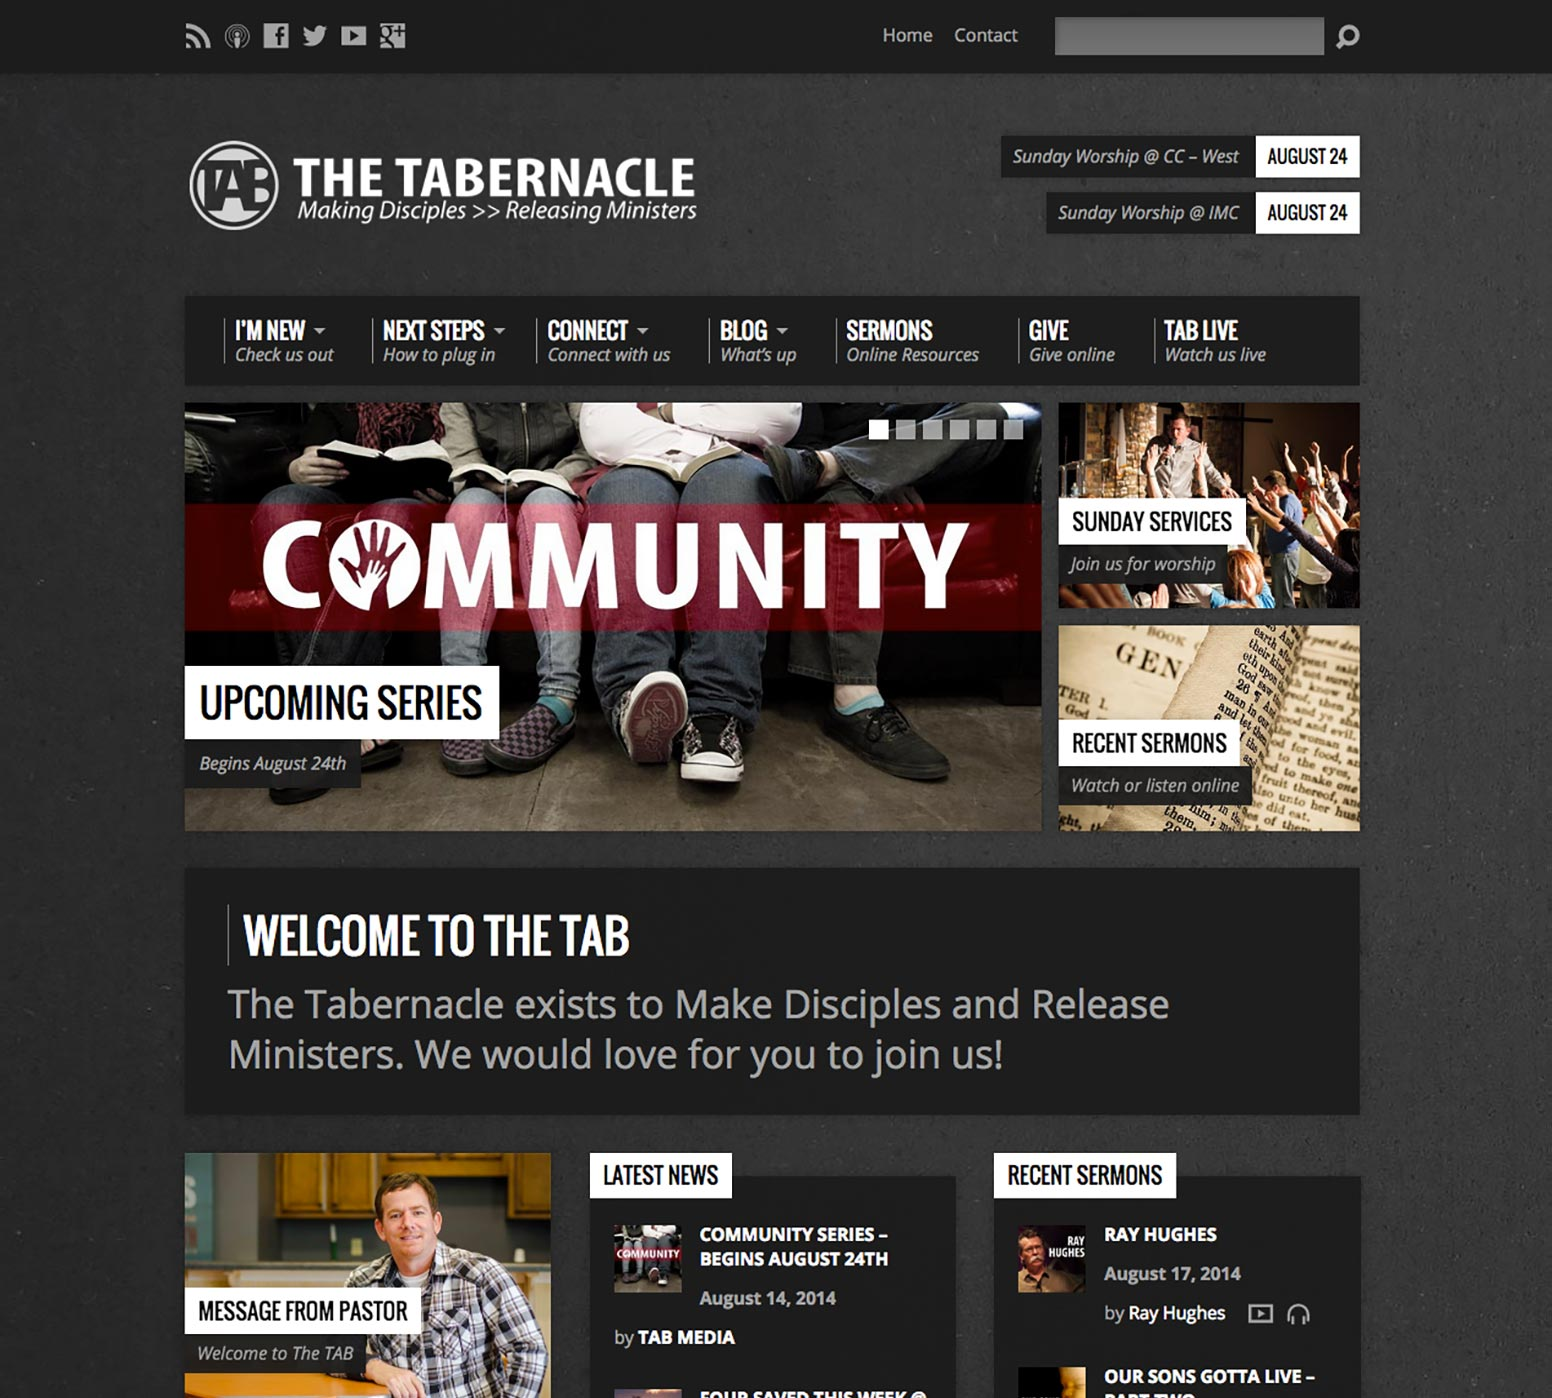 The Tabernacle Website